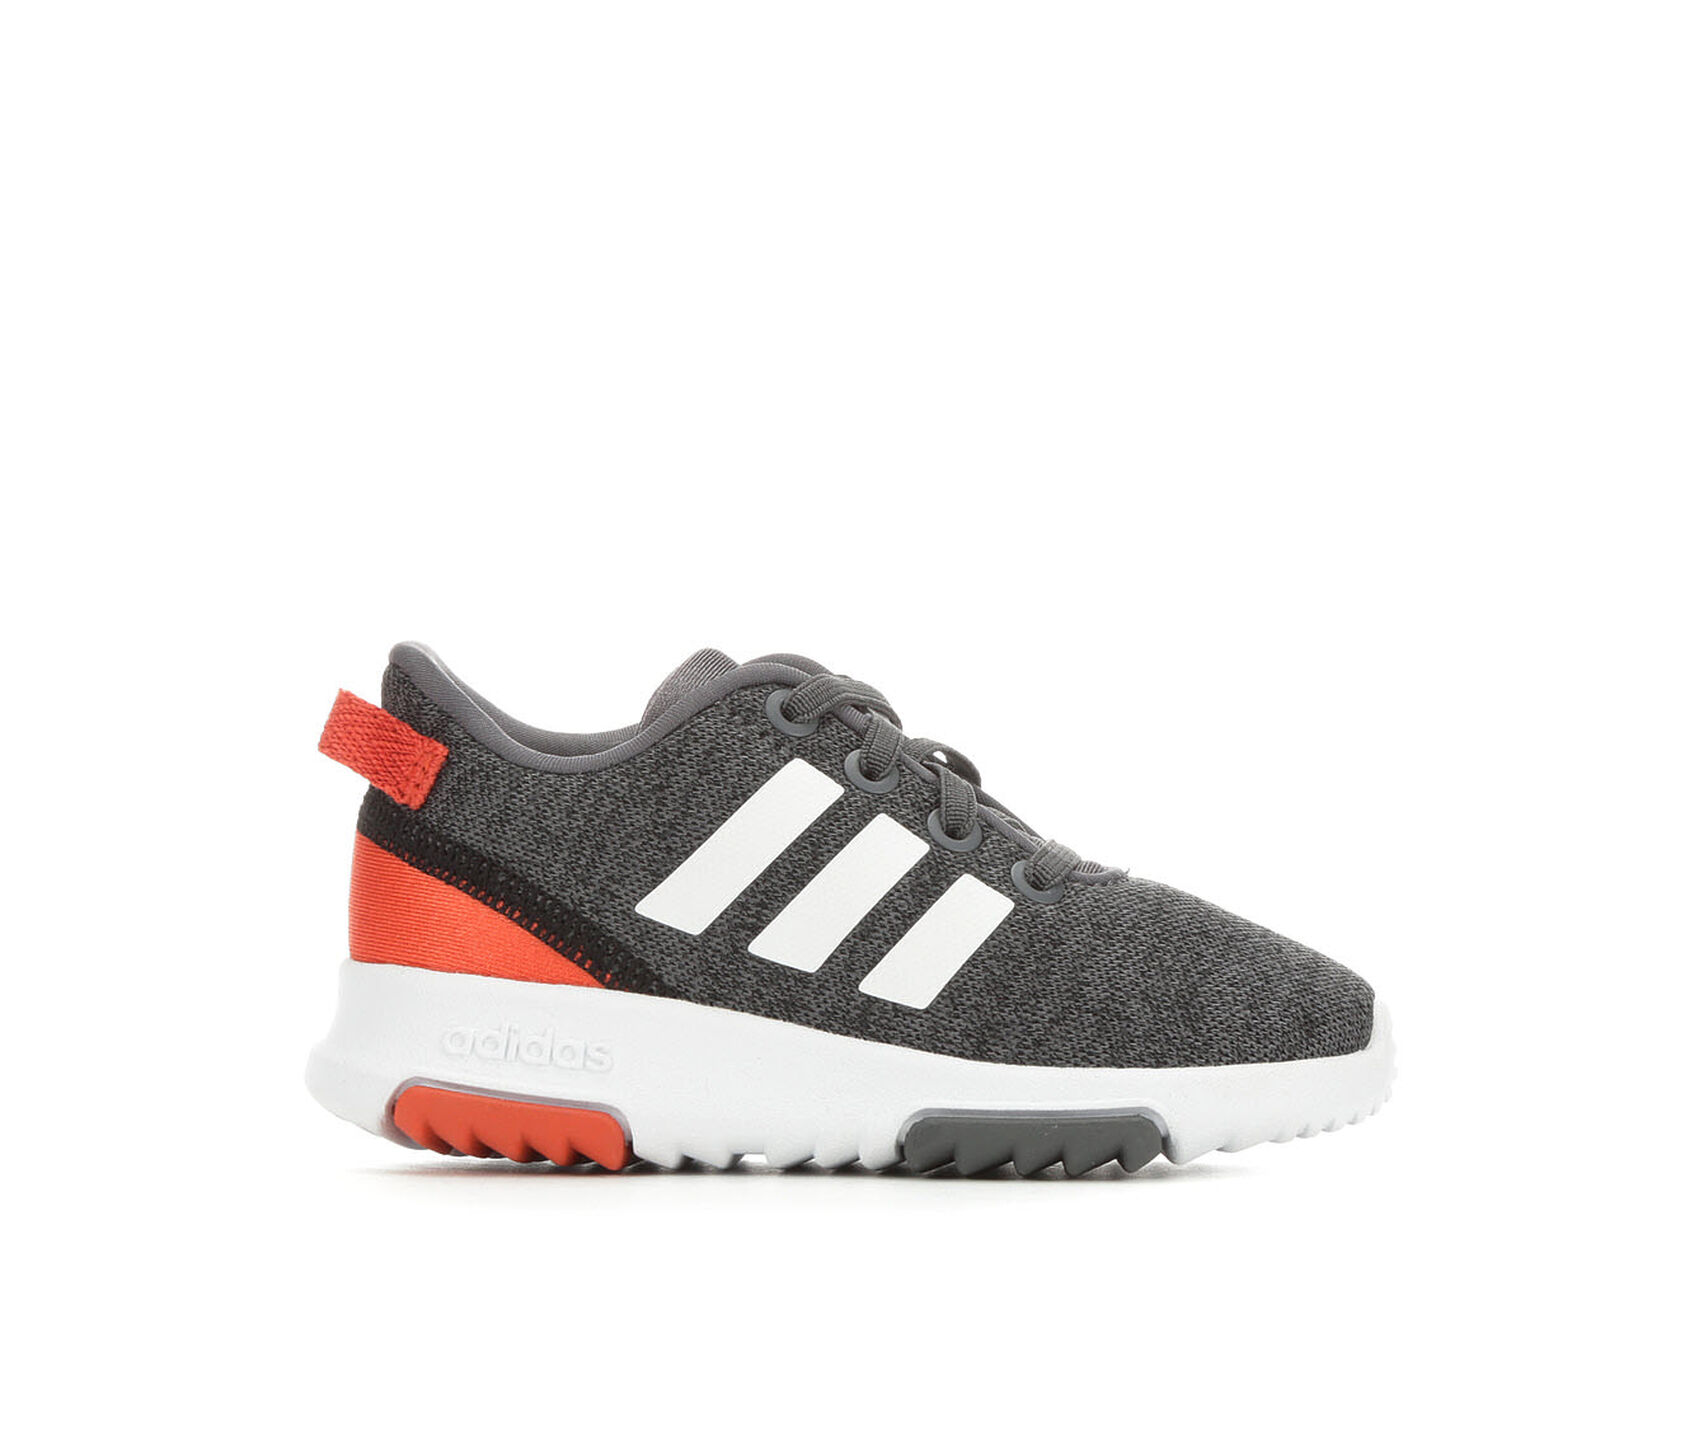 Boys  Adidas Infant   Toddler Racer TR Athletic Shoes  4b6597e27d82